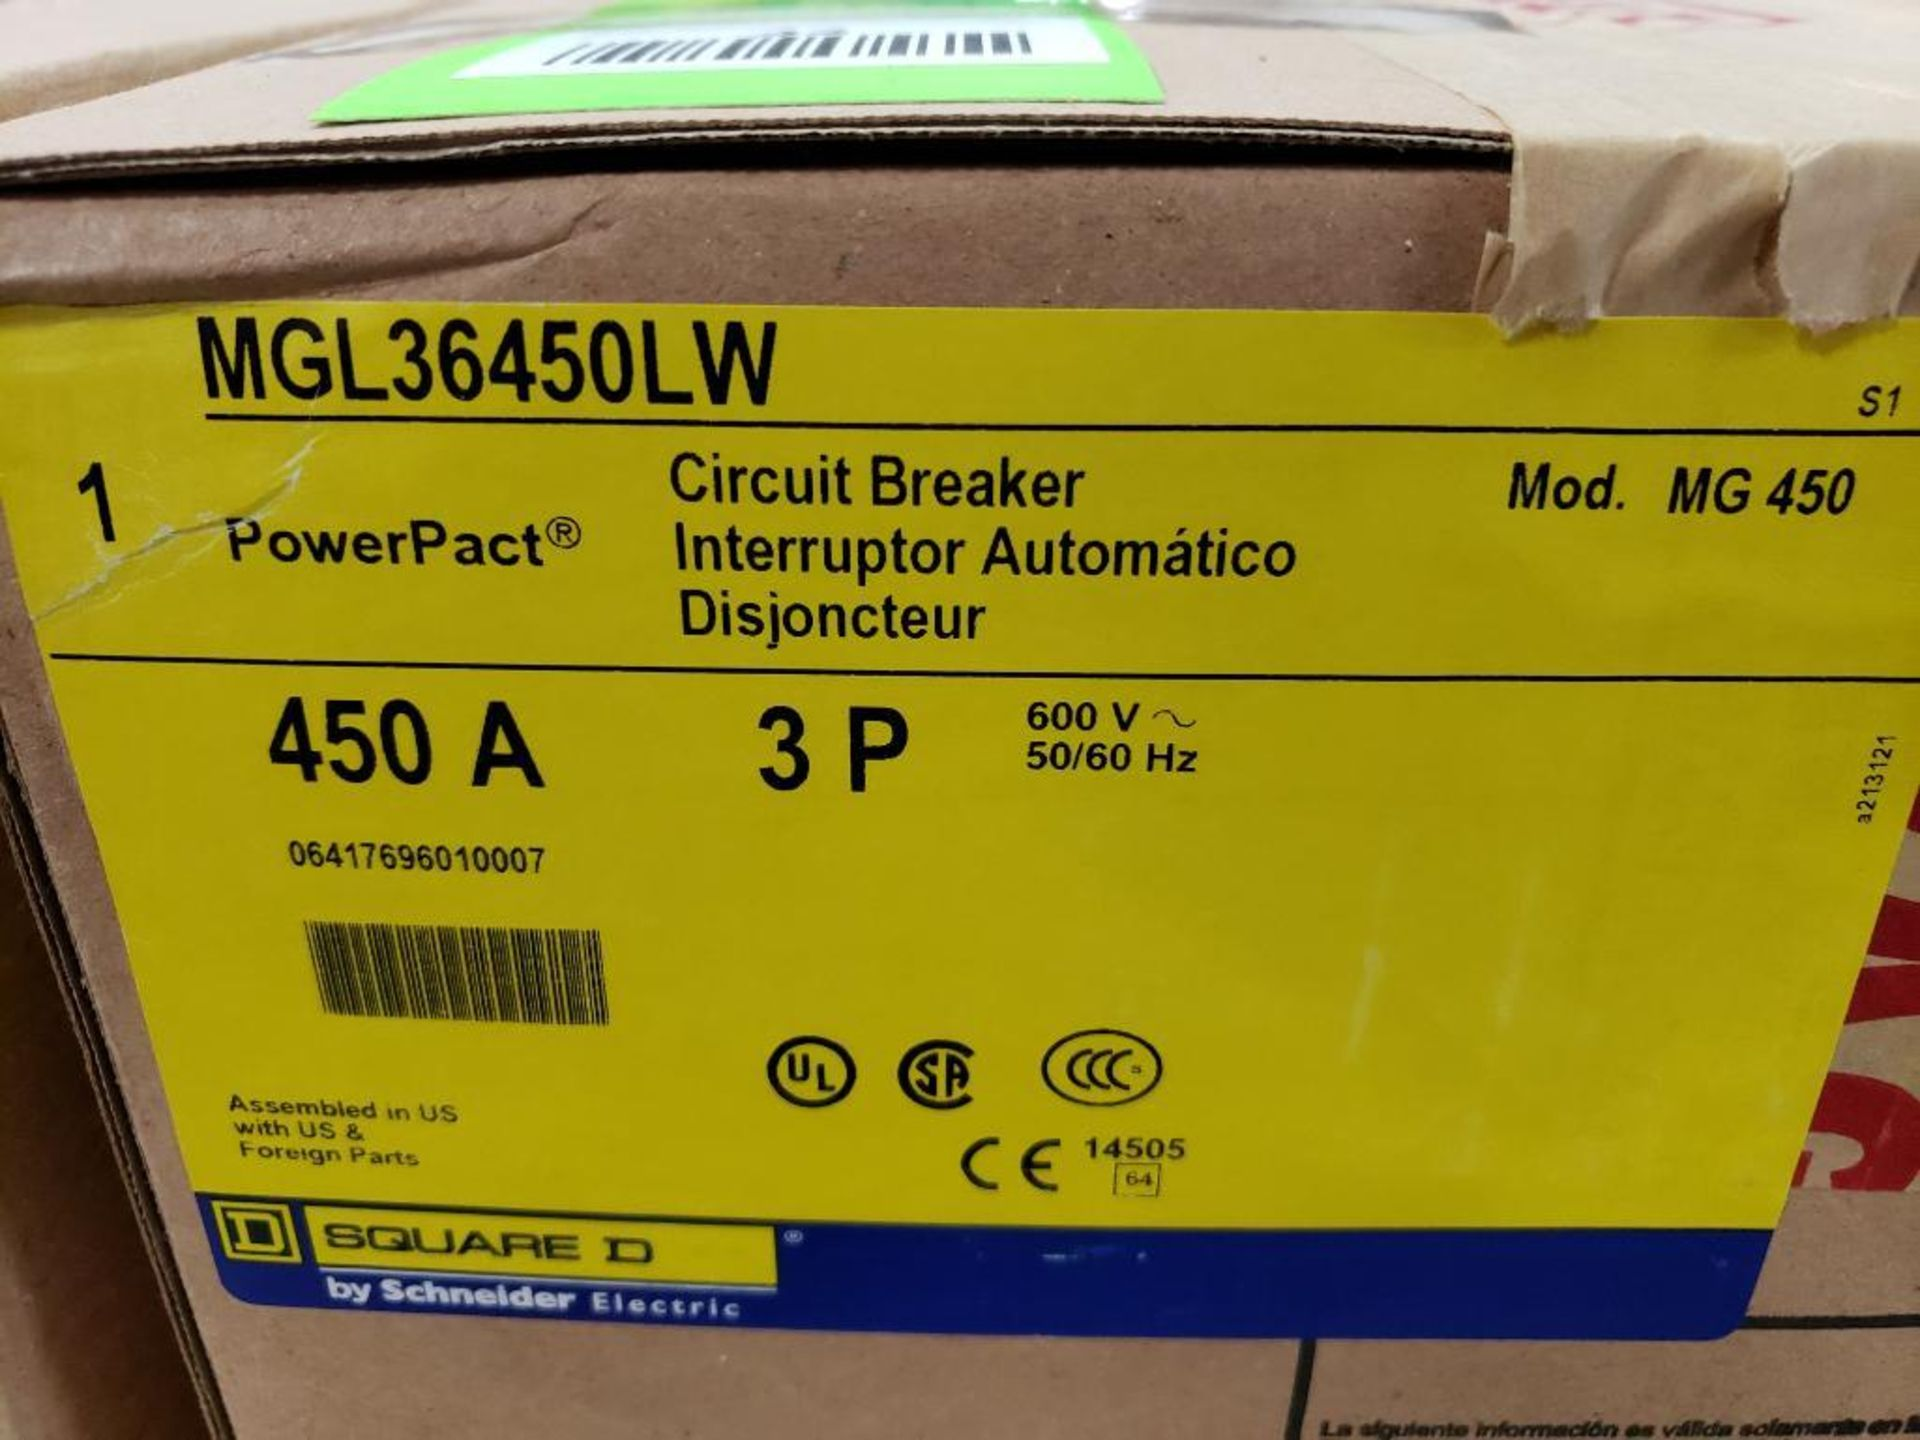 Square D PowerPact breaker. 450 amp 3 phase. Model MGL36450LW. New in box. - Image 2 of 3